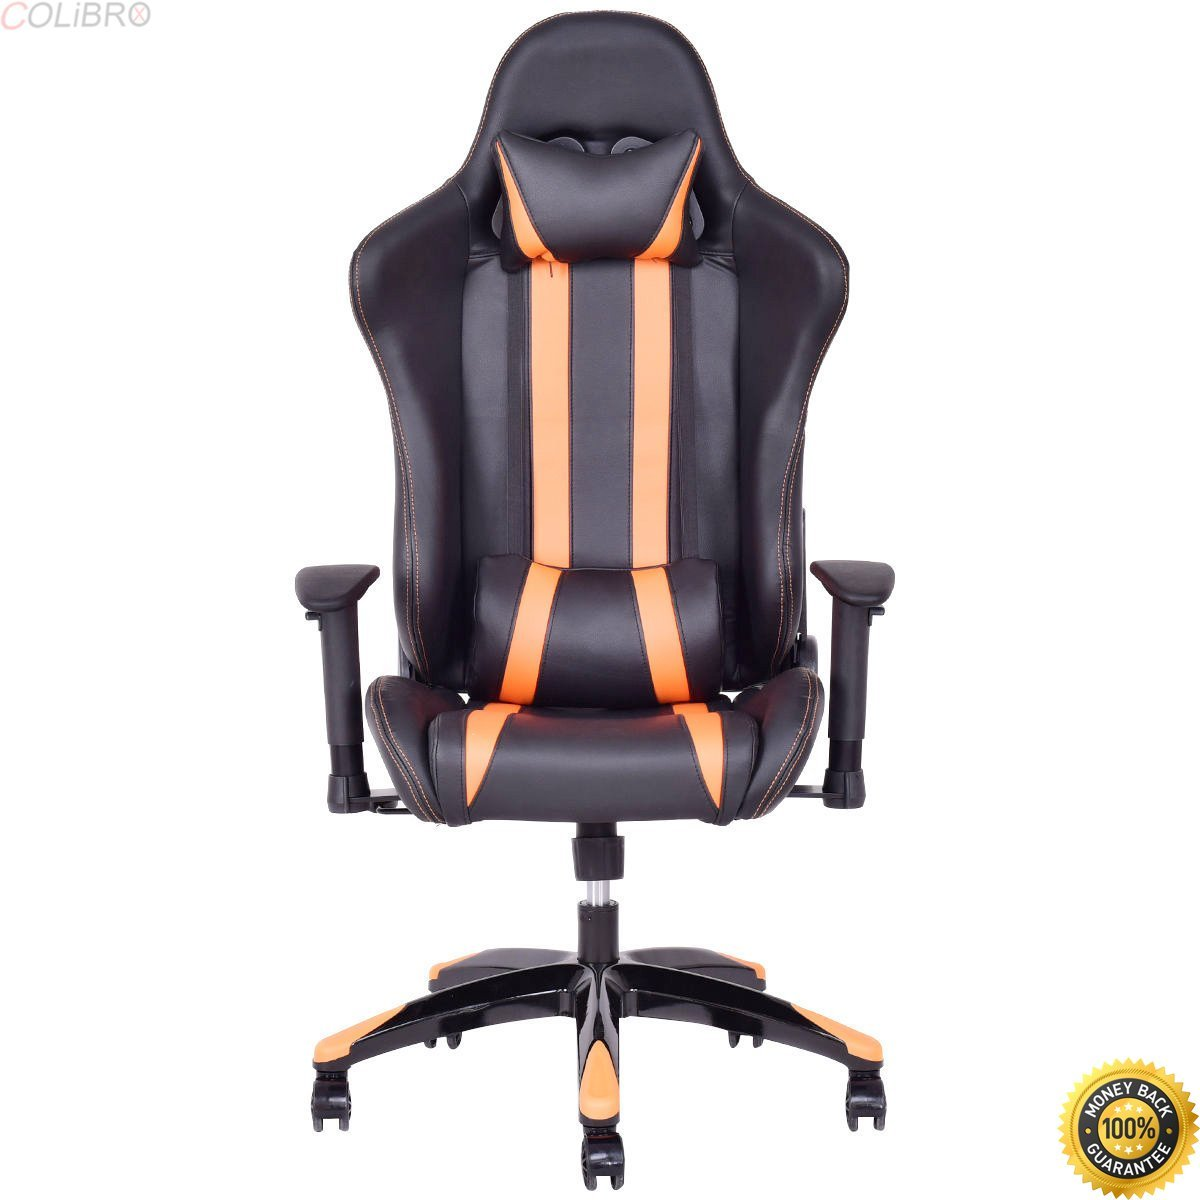 Game Chair With Speakers Cheap Video Gaming Chairs With Speakers Find Video Gaming Chairs